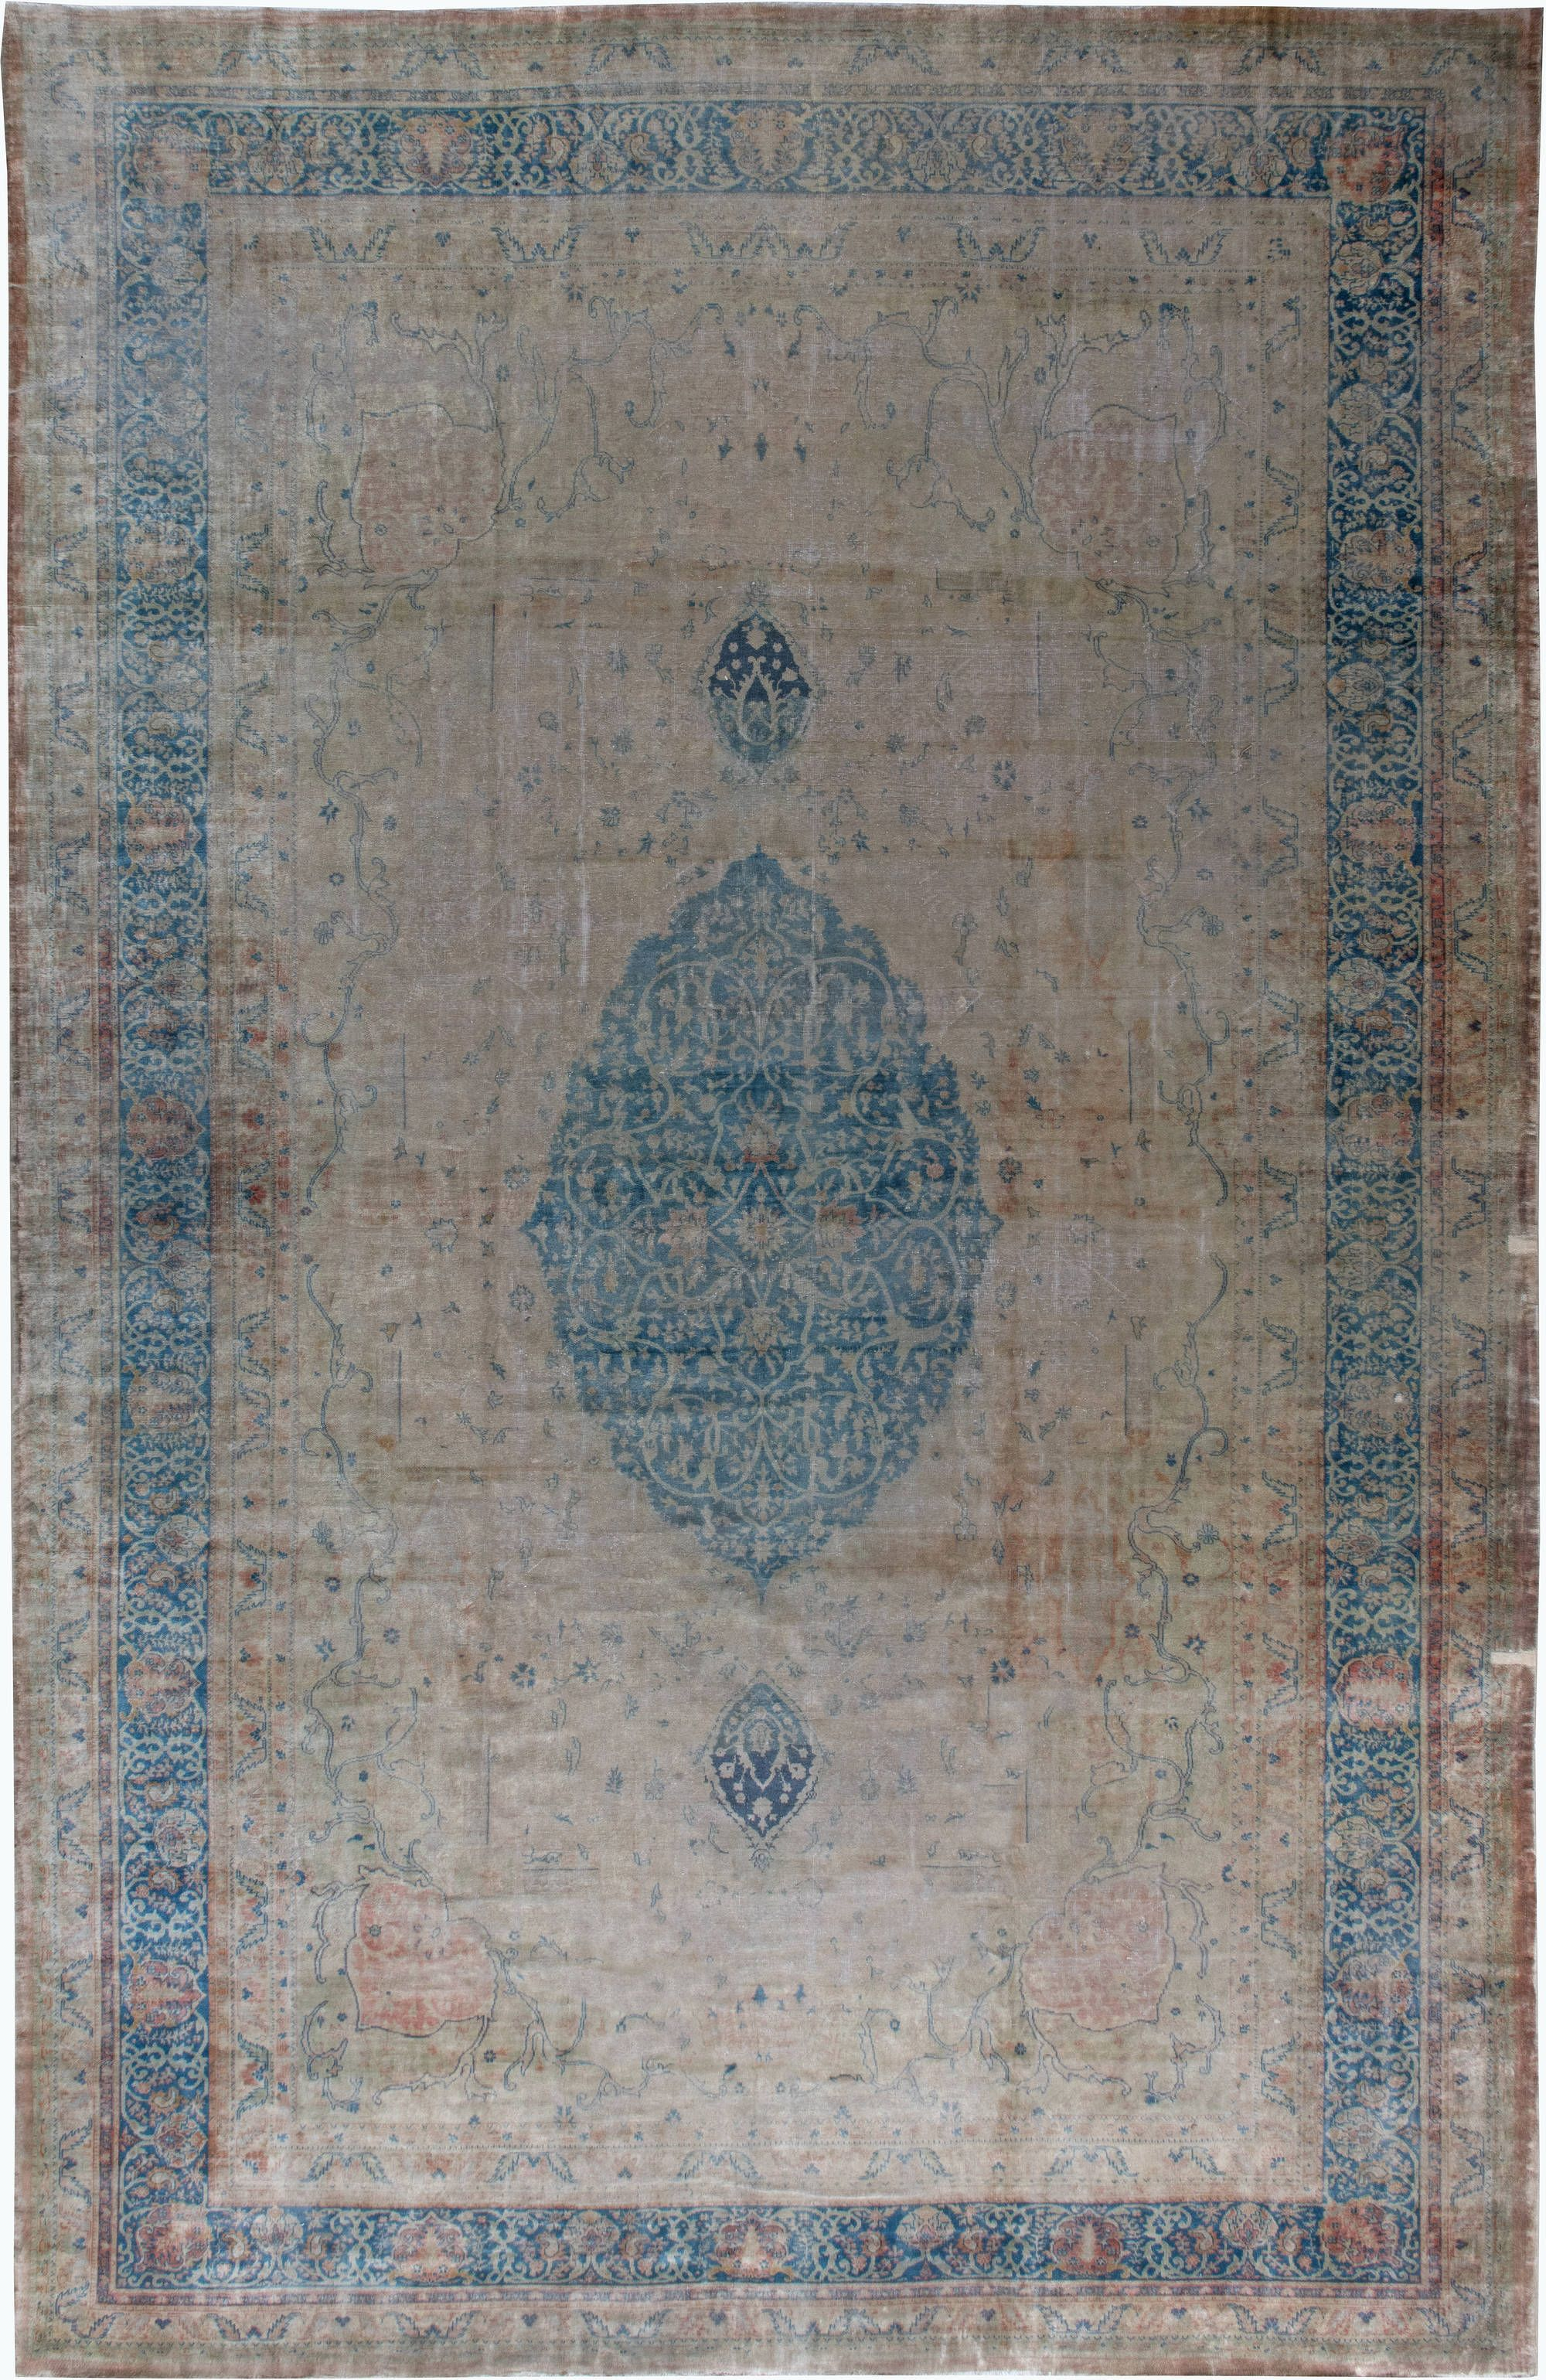 Vintage Turkish Borlou Blue And Beige Hand Knotted Wool Rug Bb6186 By Dlb Rugs Antique Persian Rug Antiques